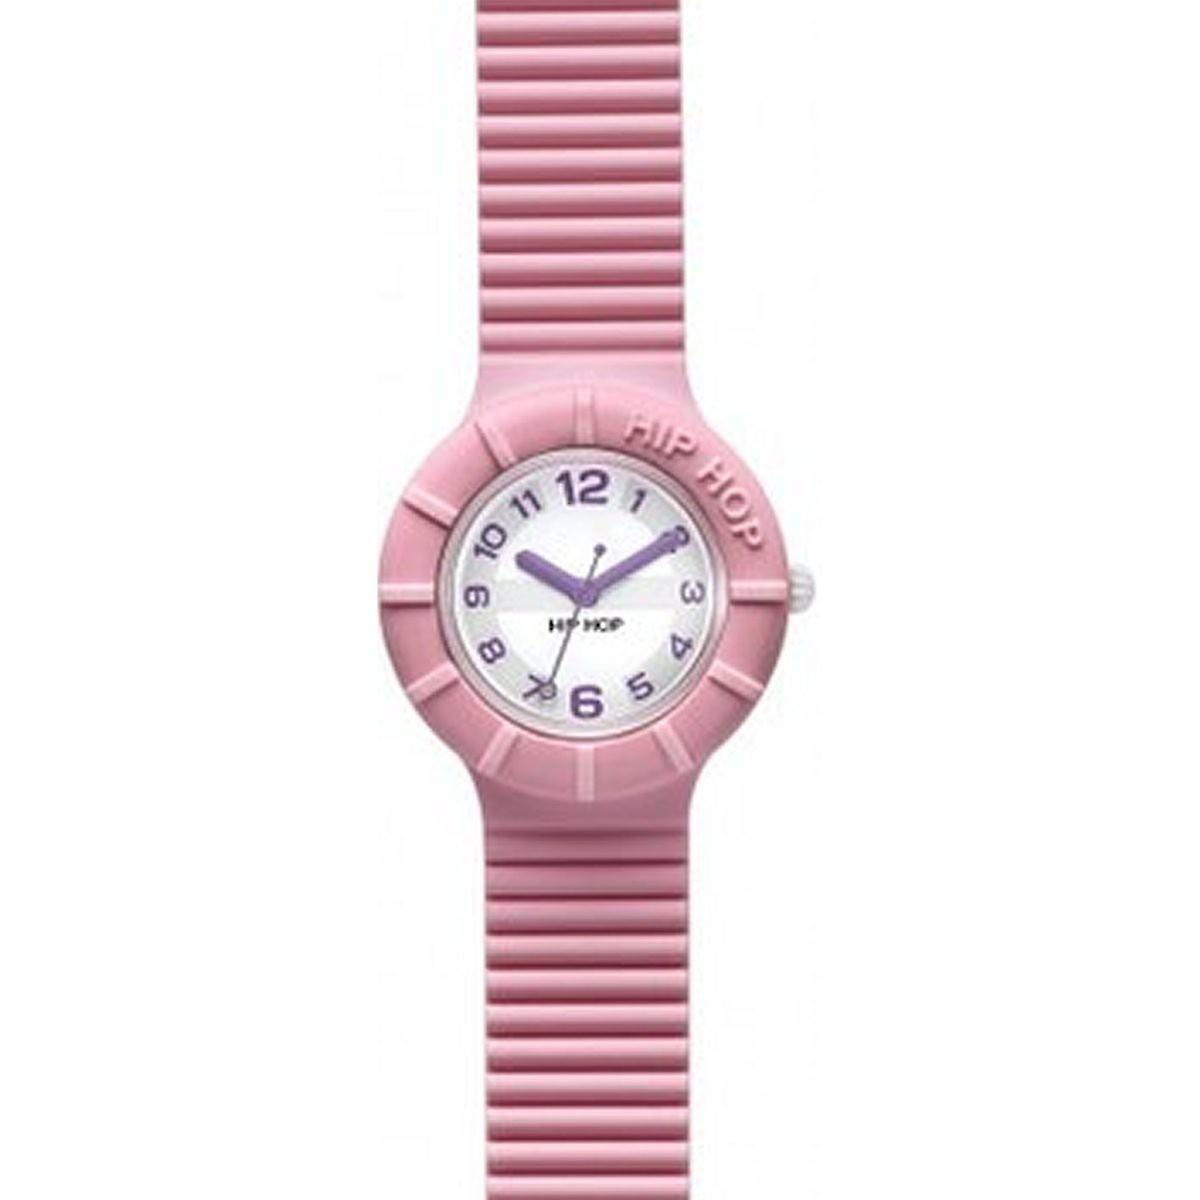 Hip hop watch wrist watch silicone watch of numbers pink HWU0124